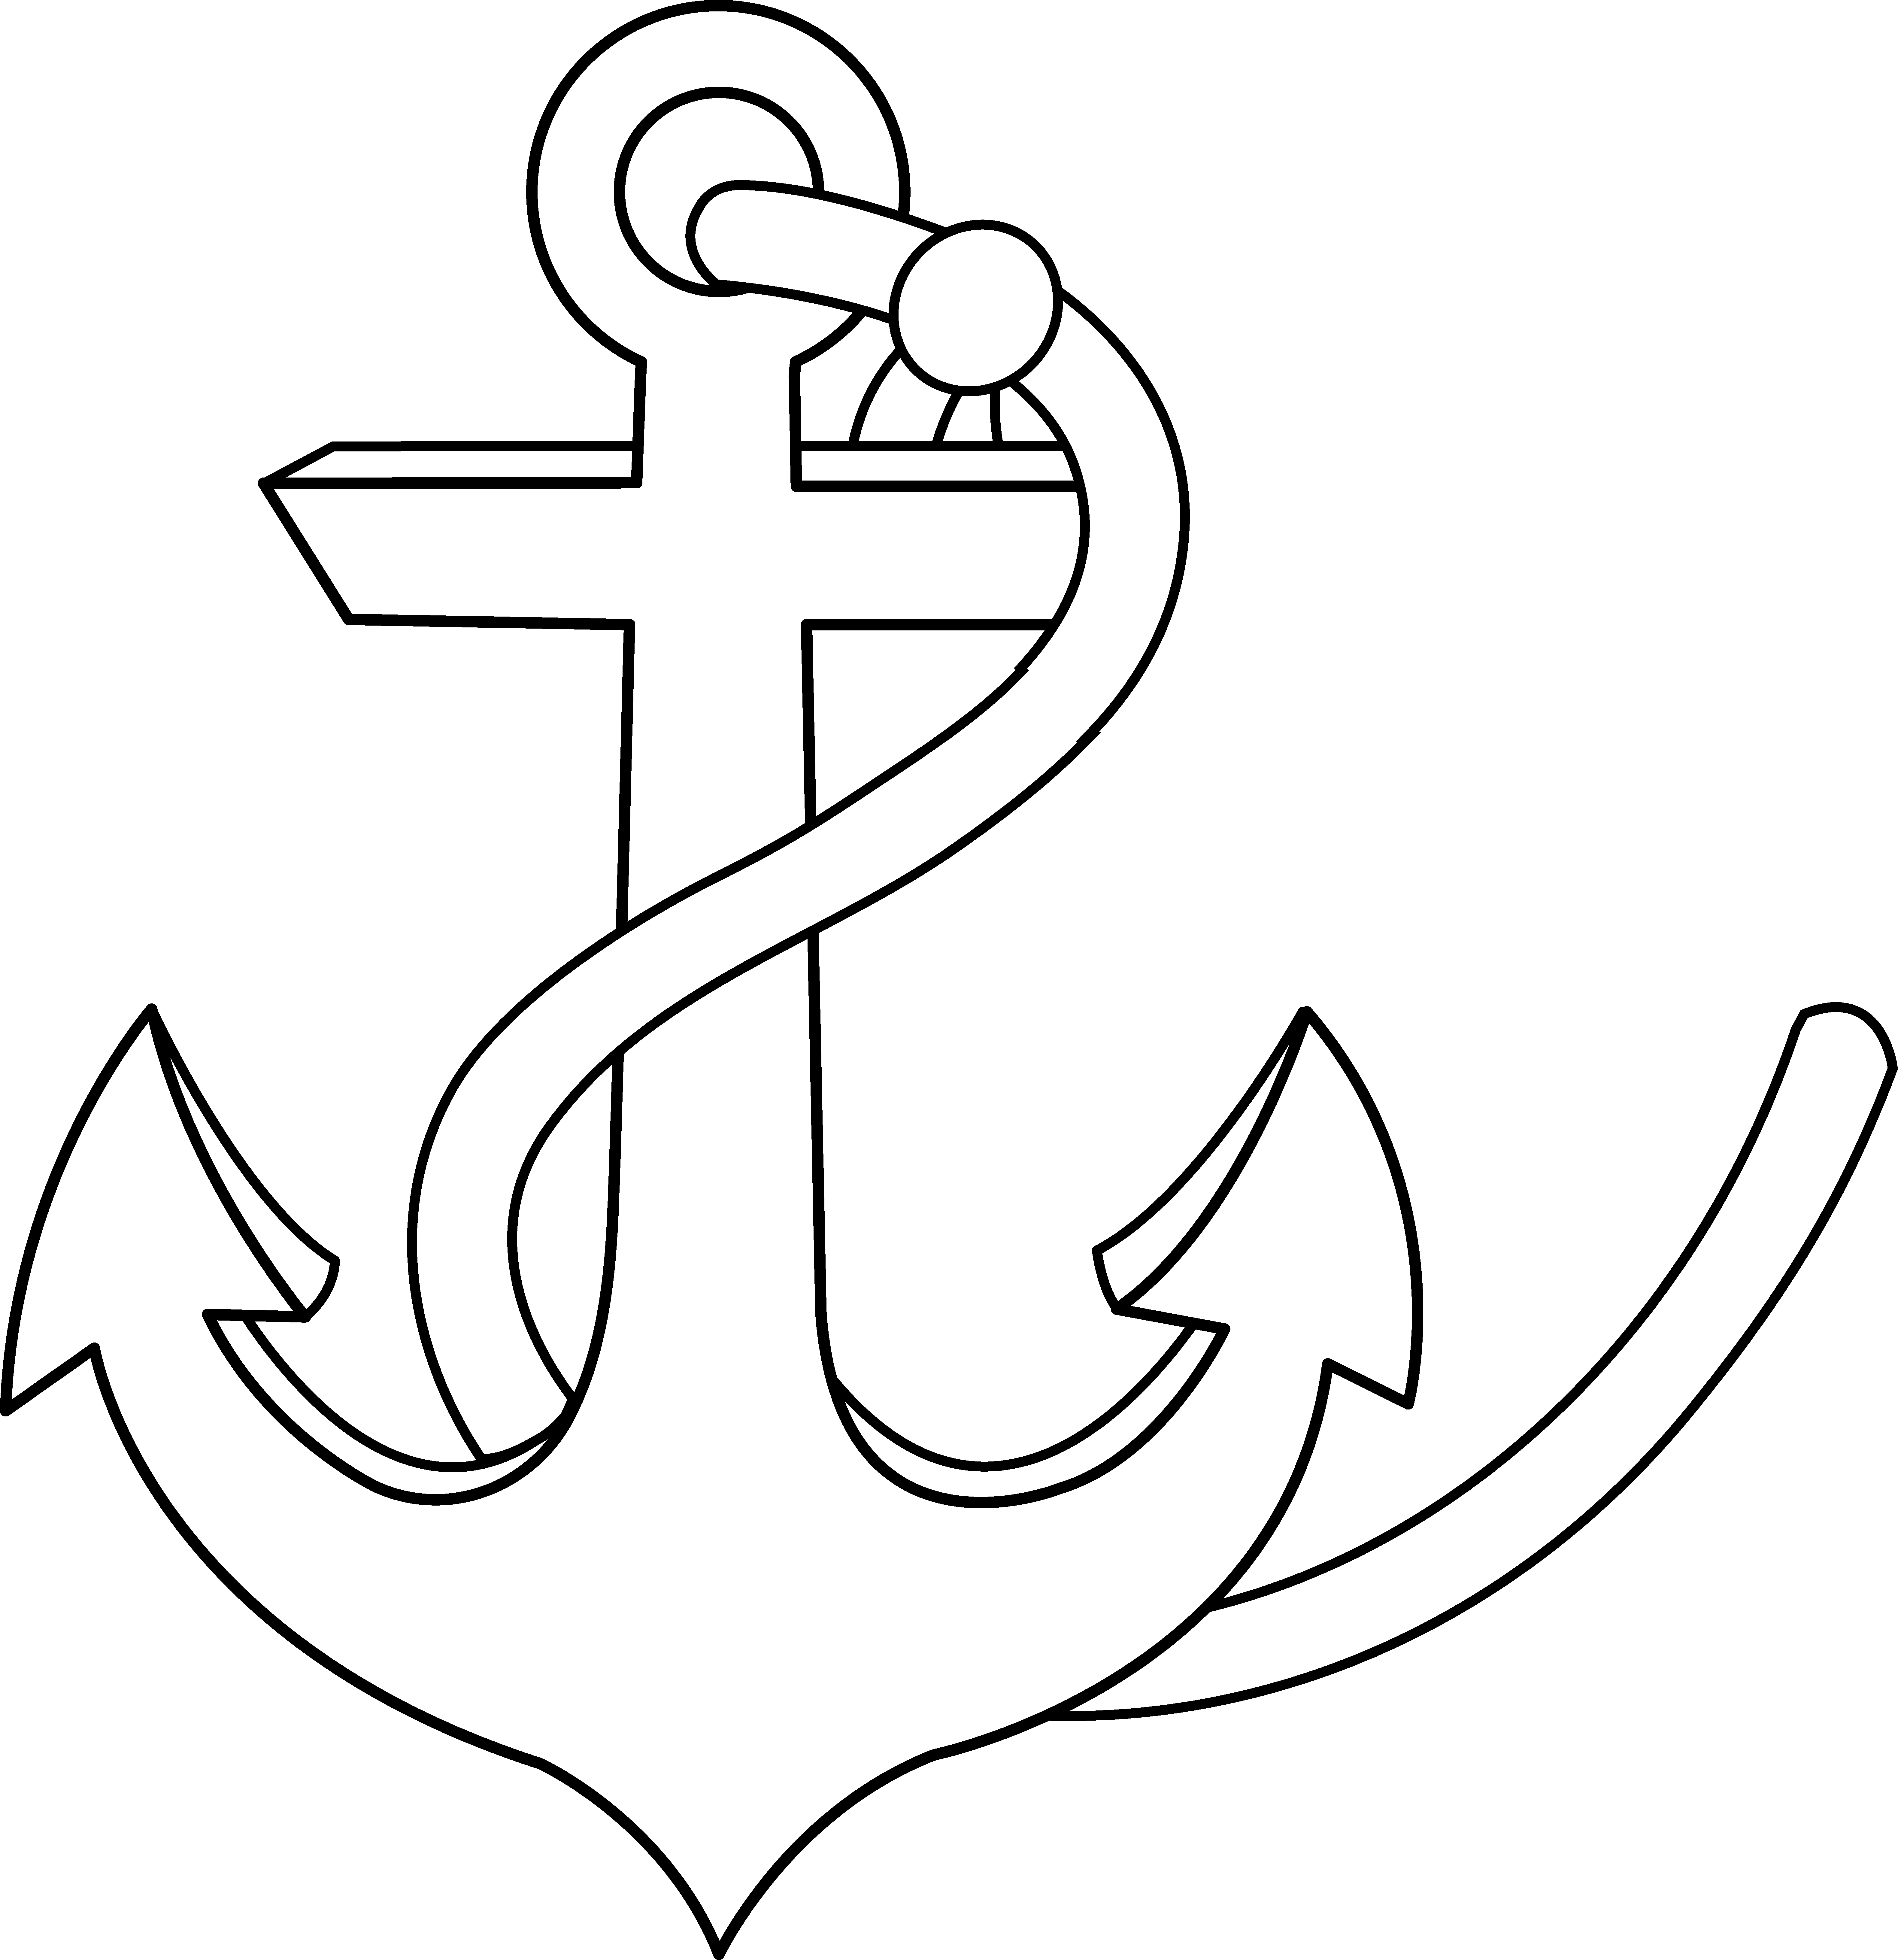 Anchor and fish clipart graphic freeuse stock Anchor Clipart | jokingart.com graphic freeuse stock